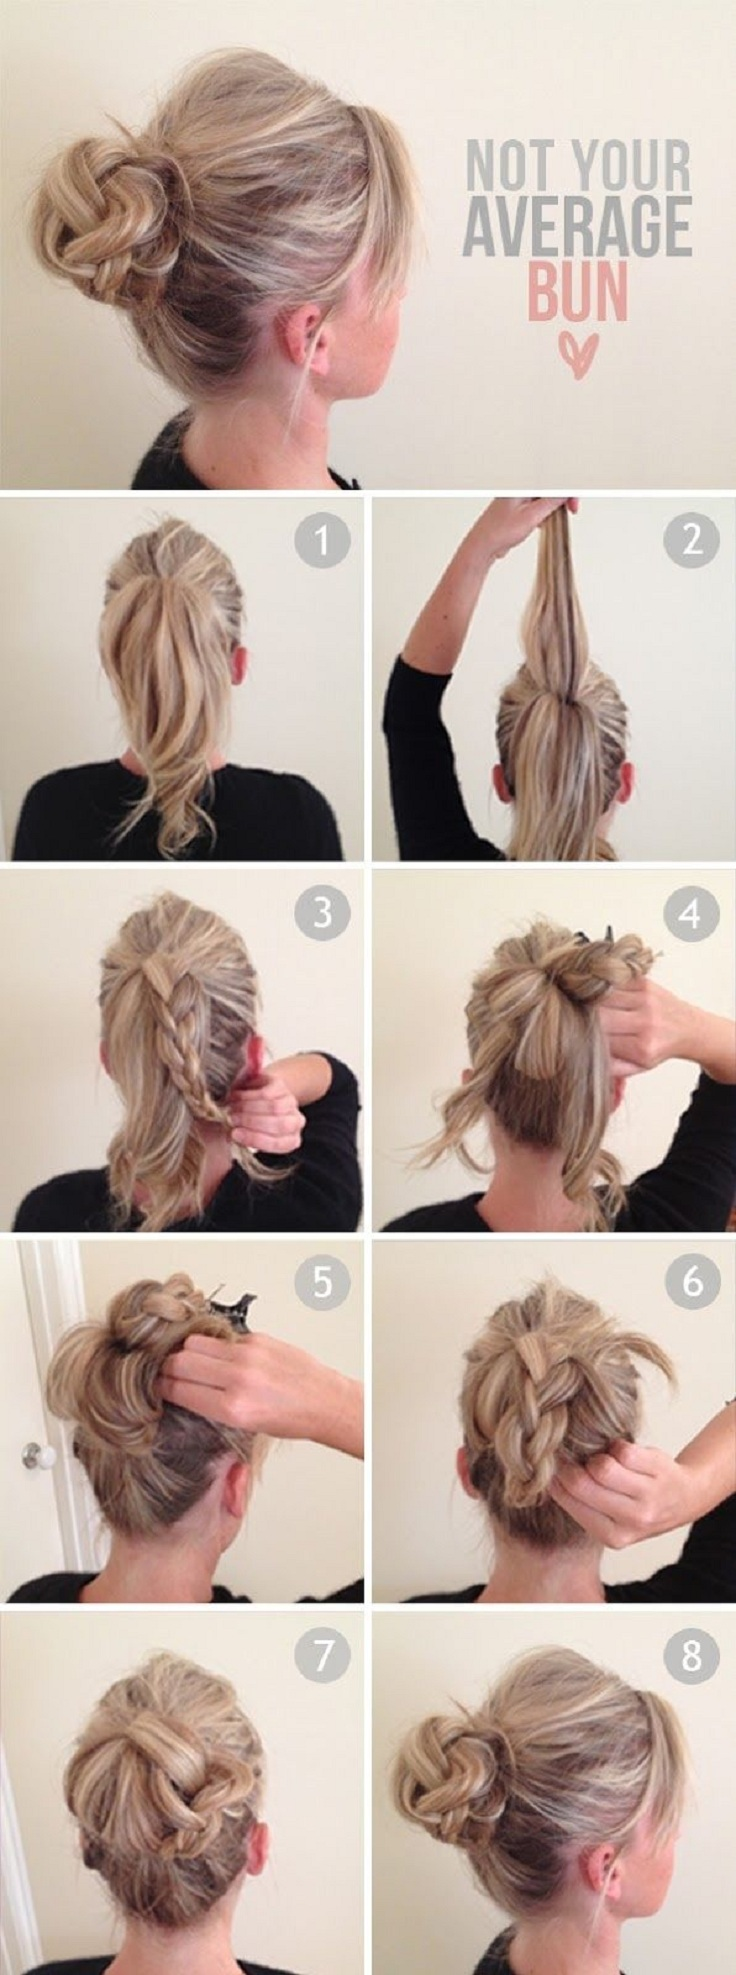 Top 10 Hairstyle Tutorials For This Fall - Top Inspired